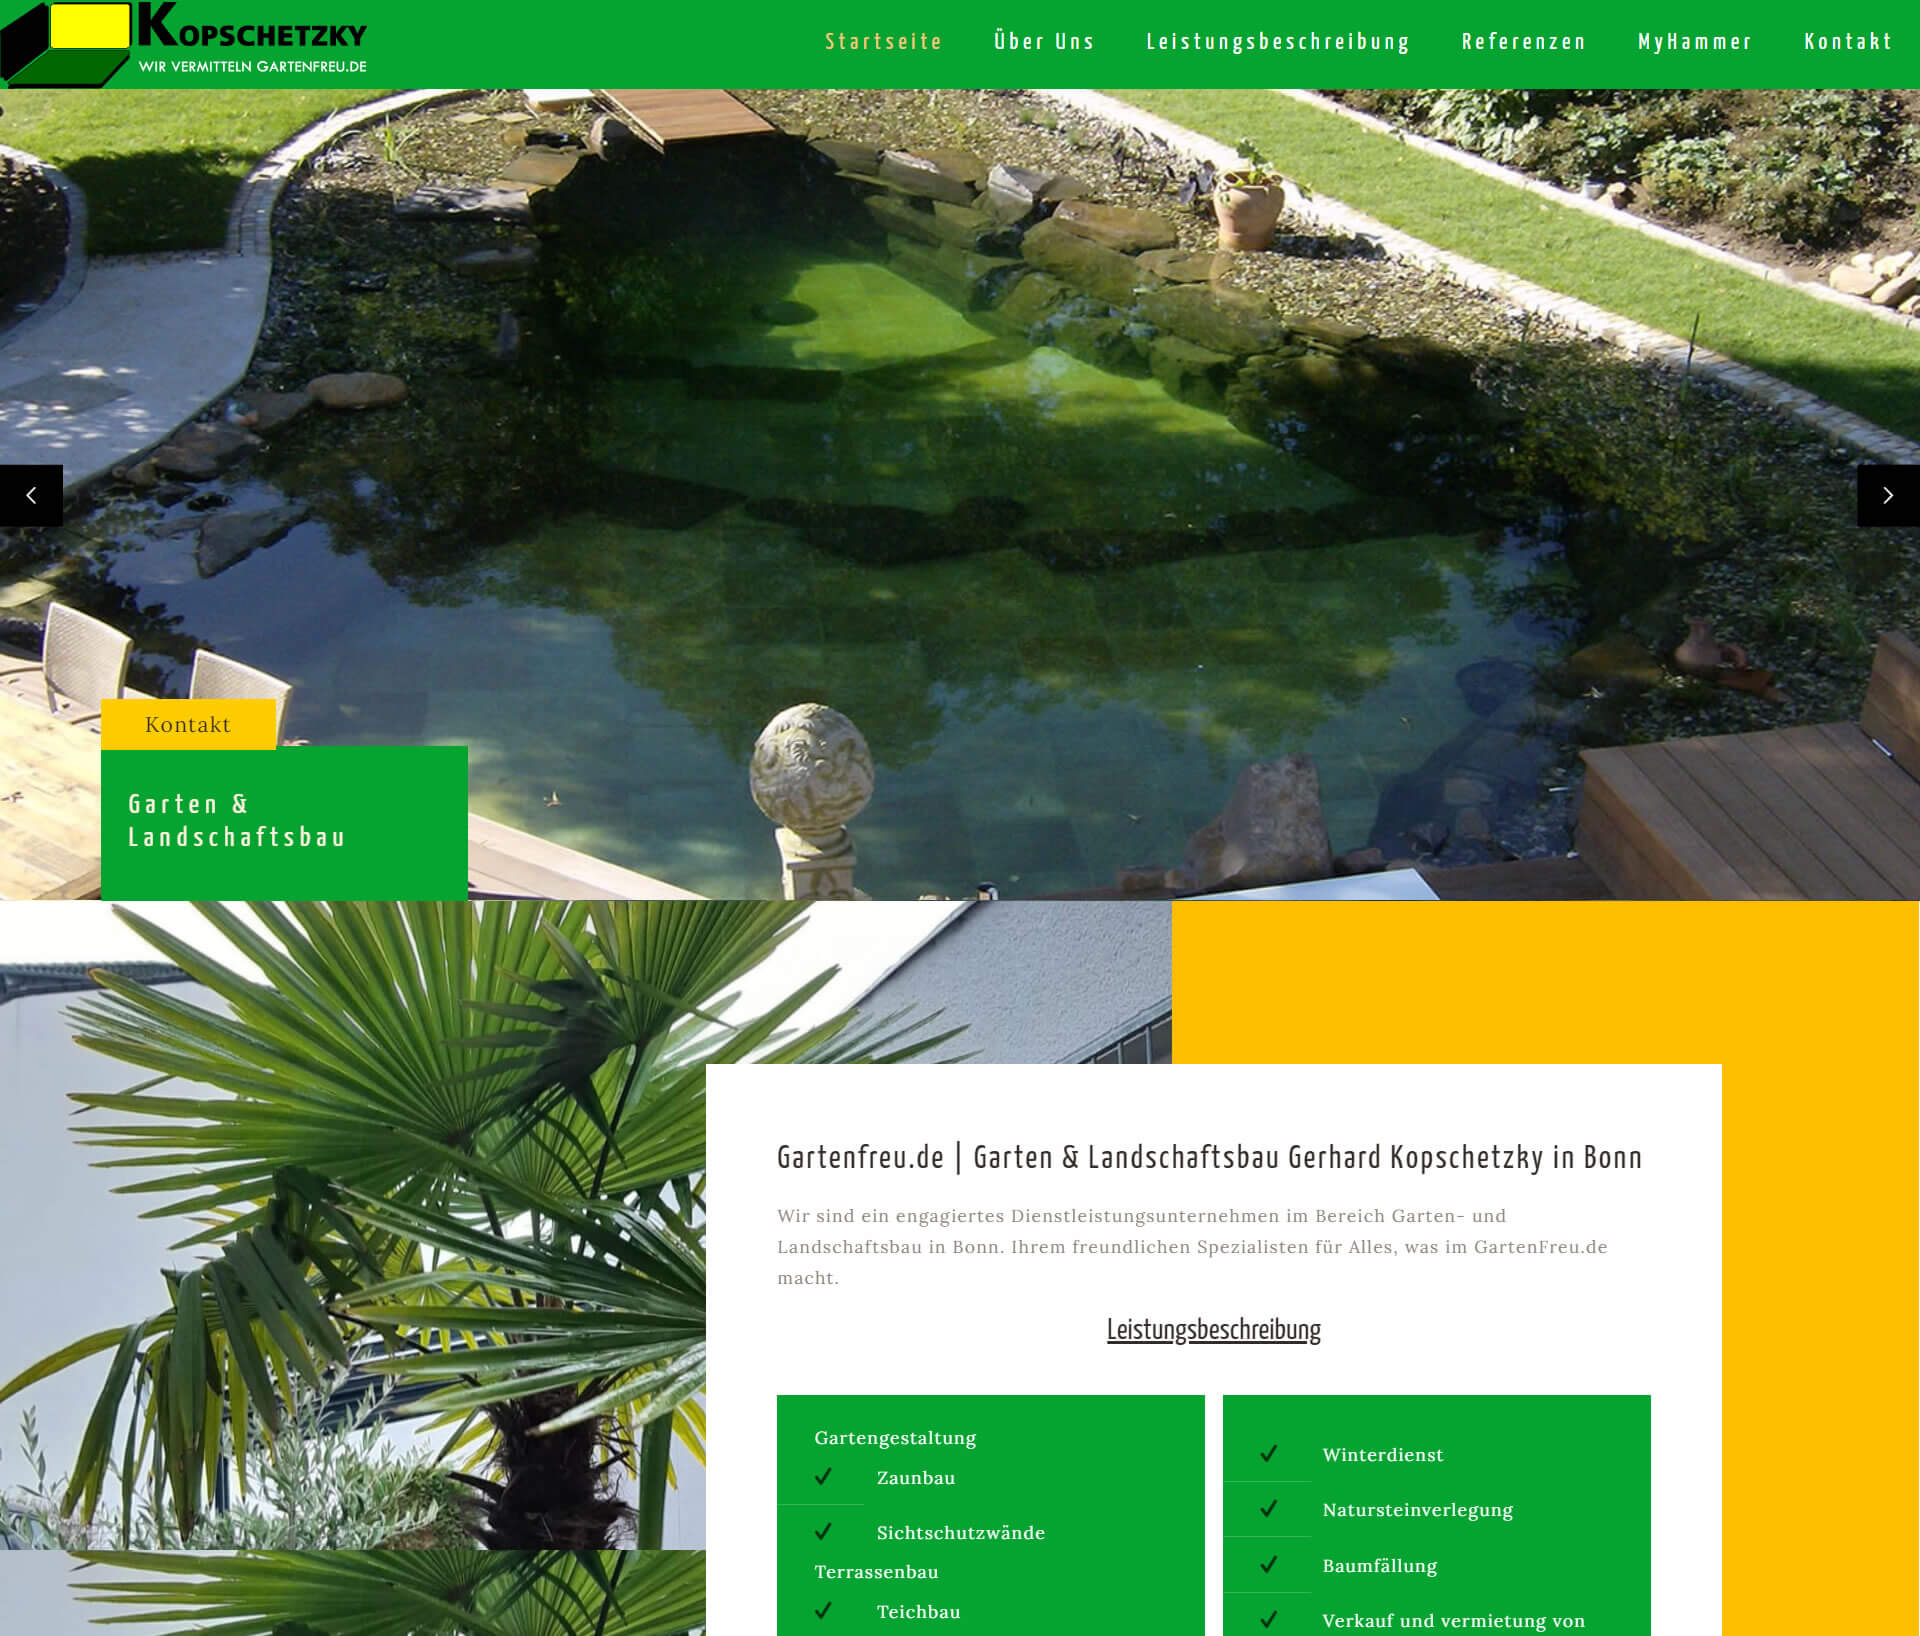 web design in cameroon